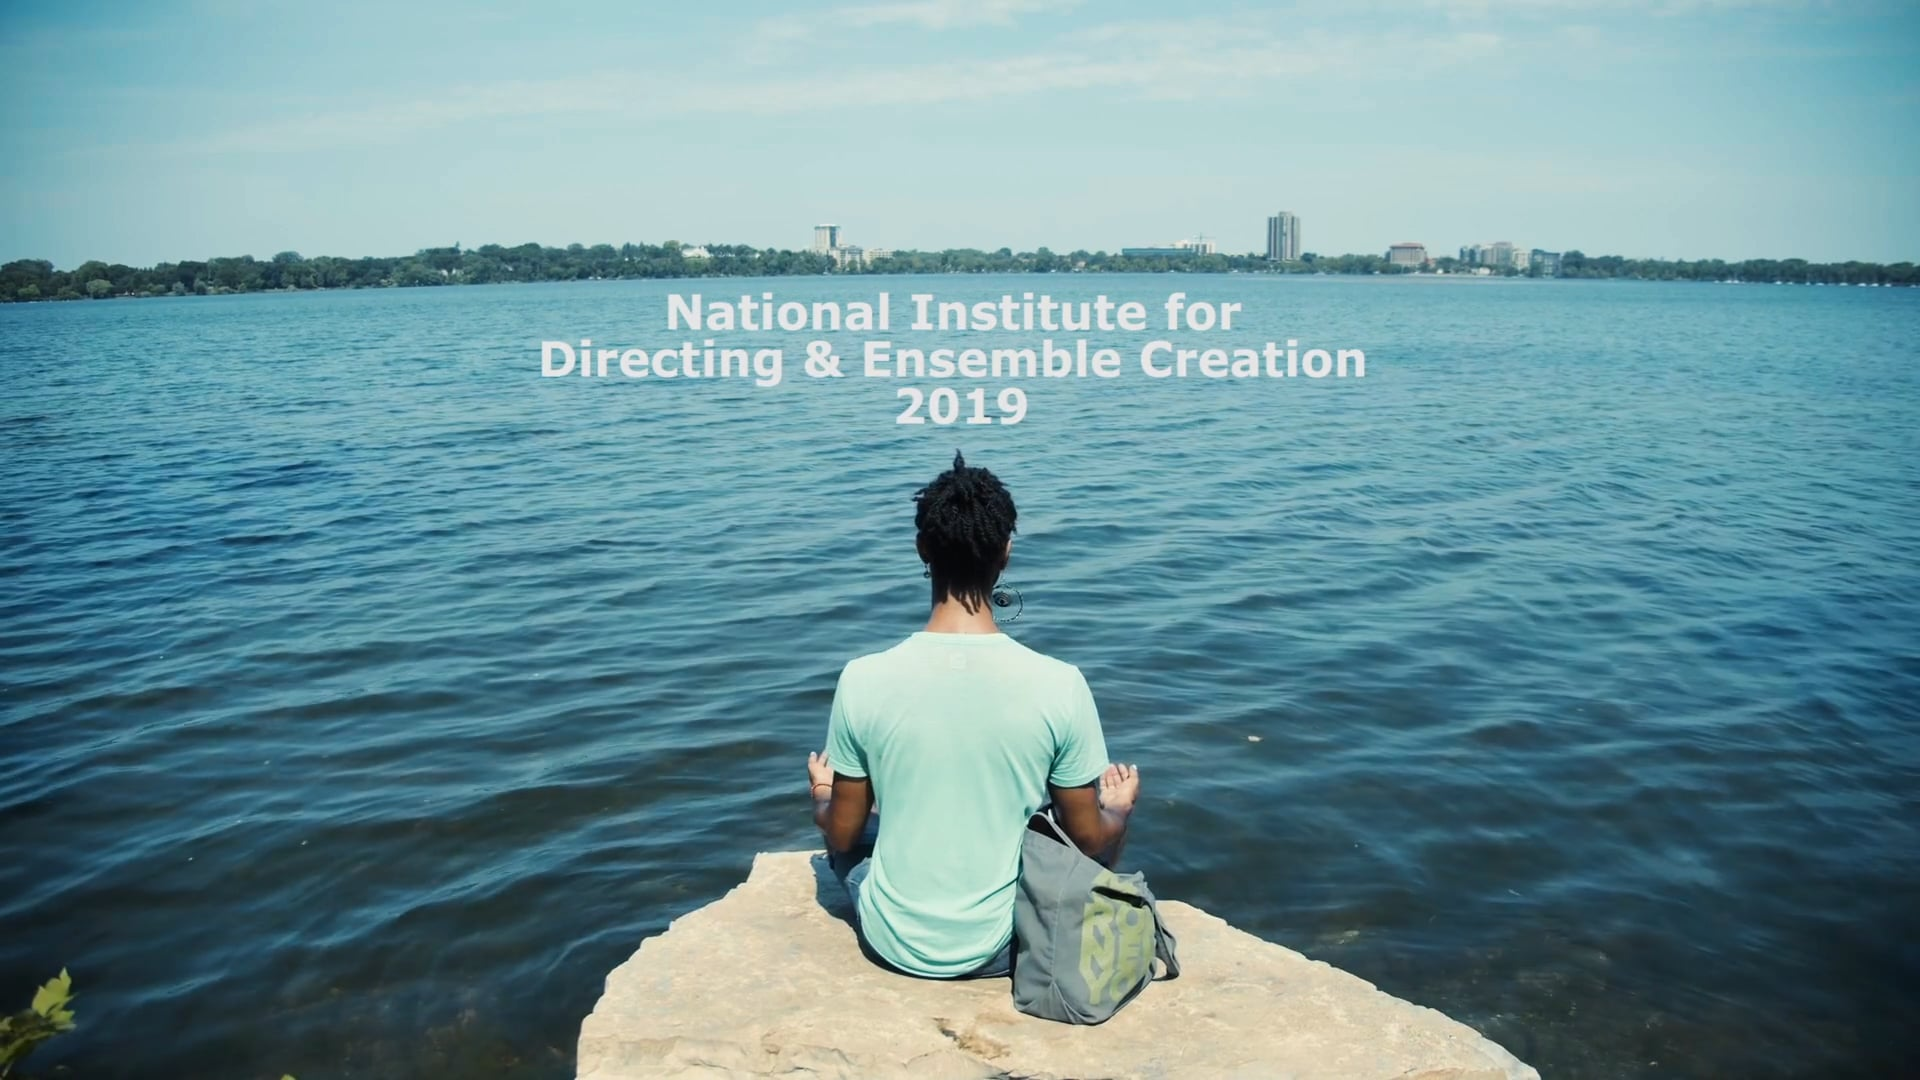 2019 National Institute for Directing & Ensemble Creation